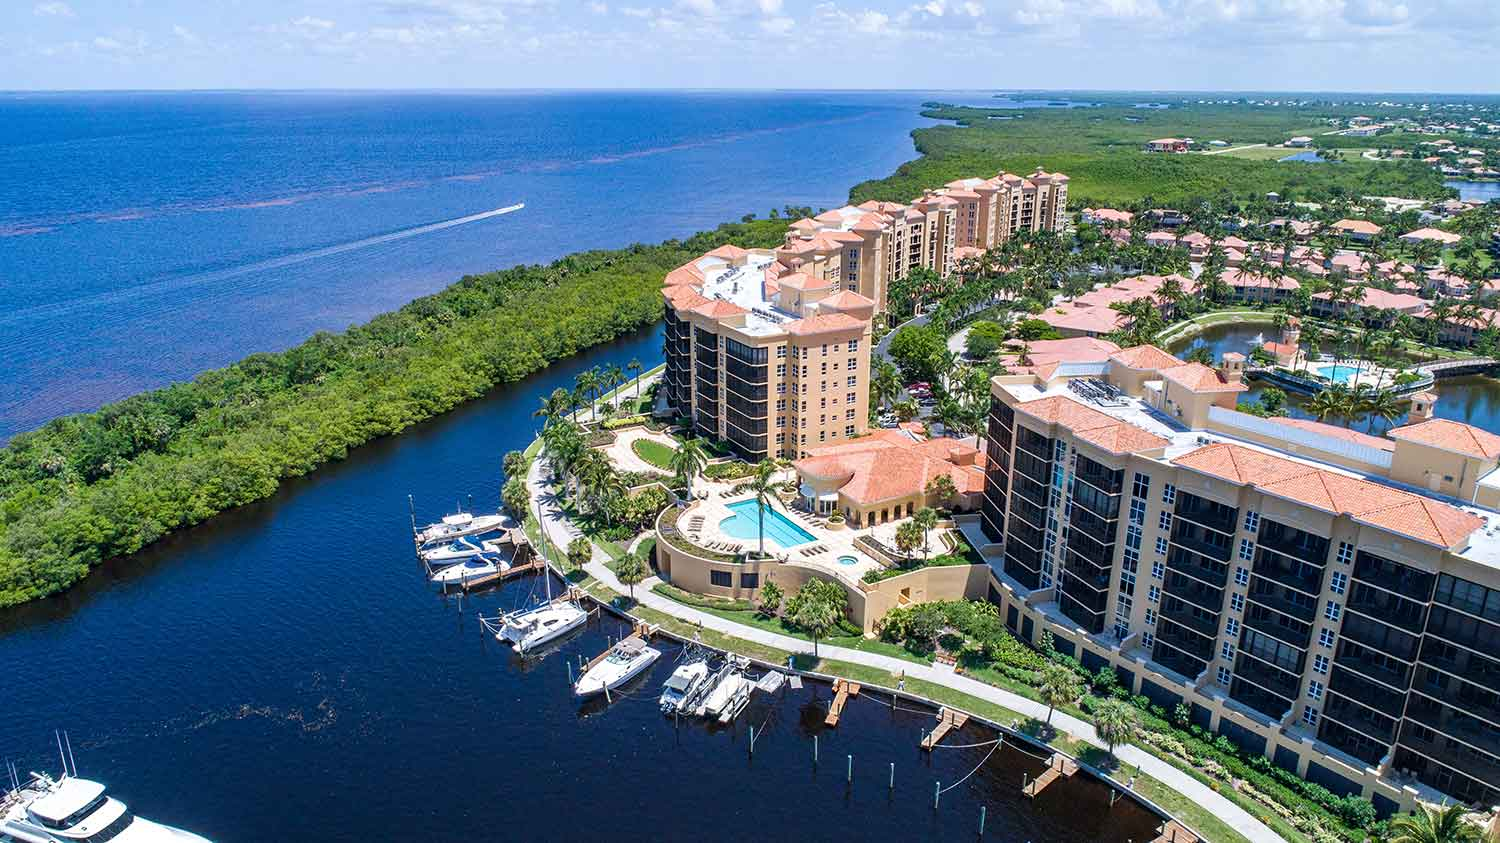 Aerial image of waterfront condos